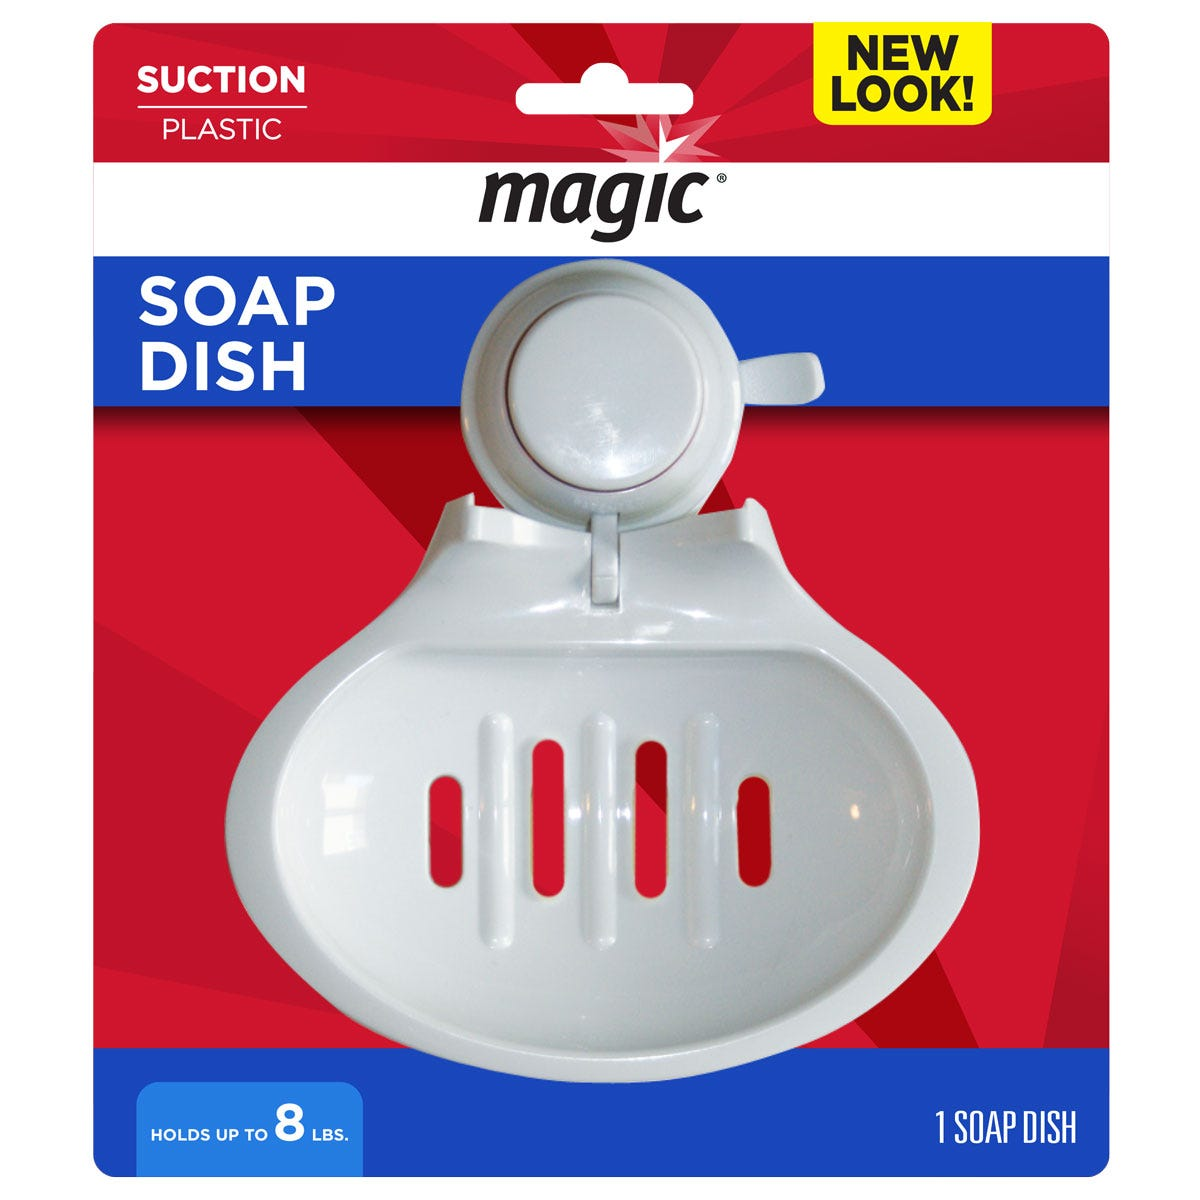 Suction Cup Soap Dish for Showers